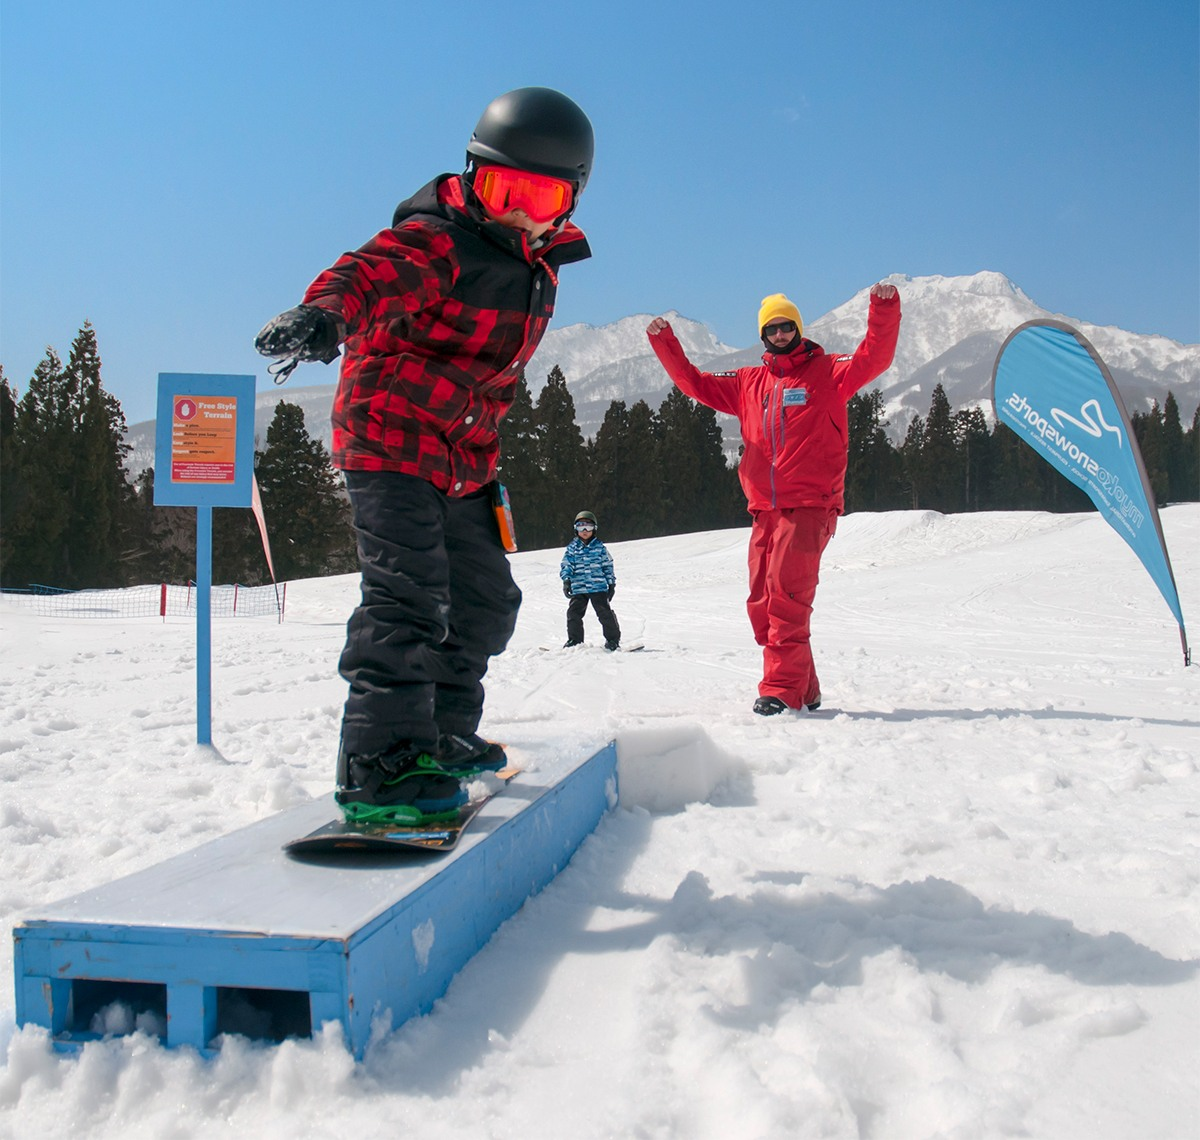 AS-Prices-1200w-x-1140h-800wx450h Kids (7-14) Shredders - Group Snowboard Lessons